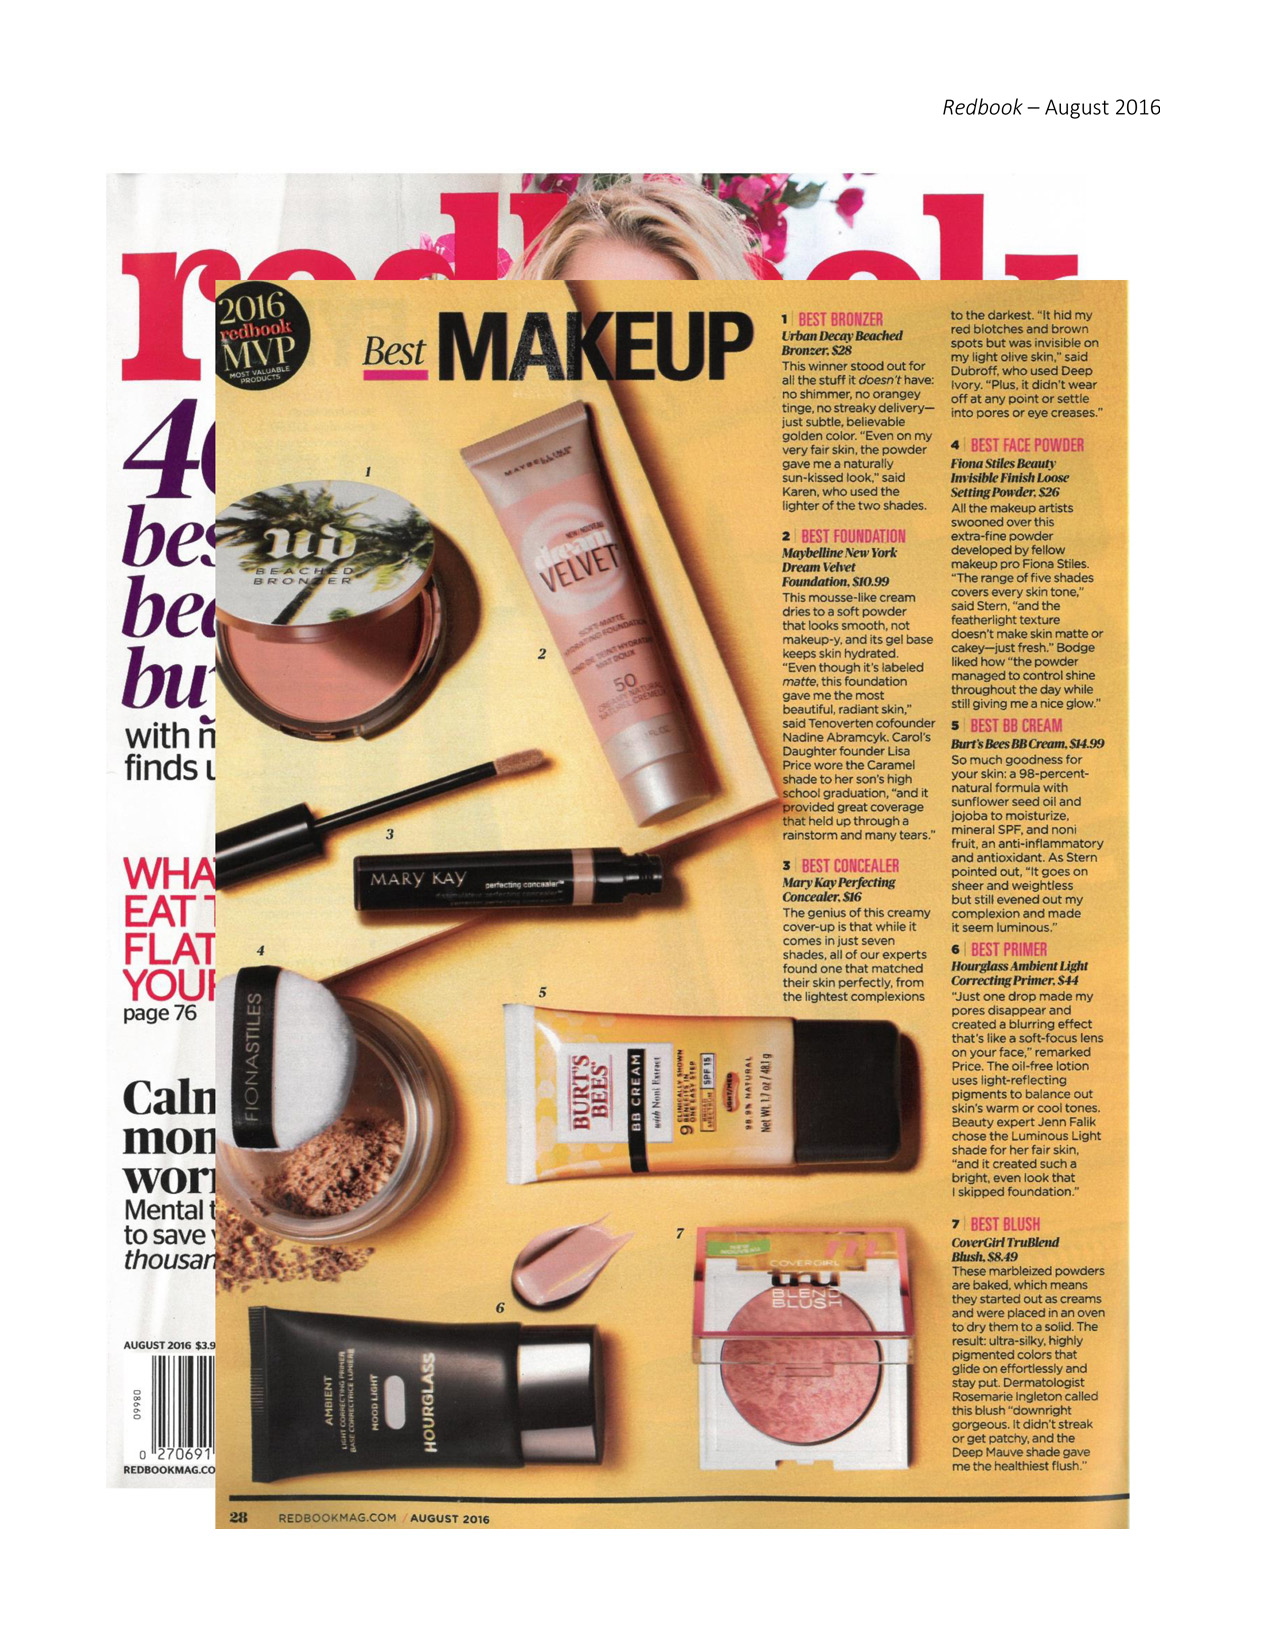 ... Perfecting Concealer as mentioned in Redbook ® magazine, August 2016